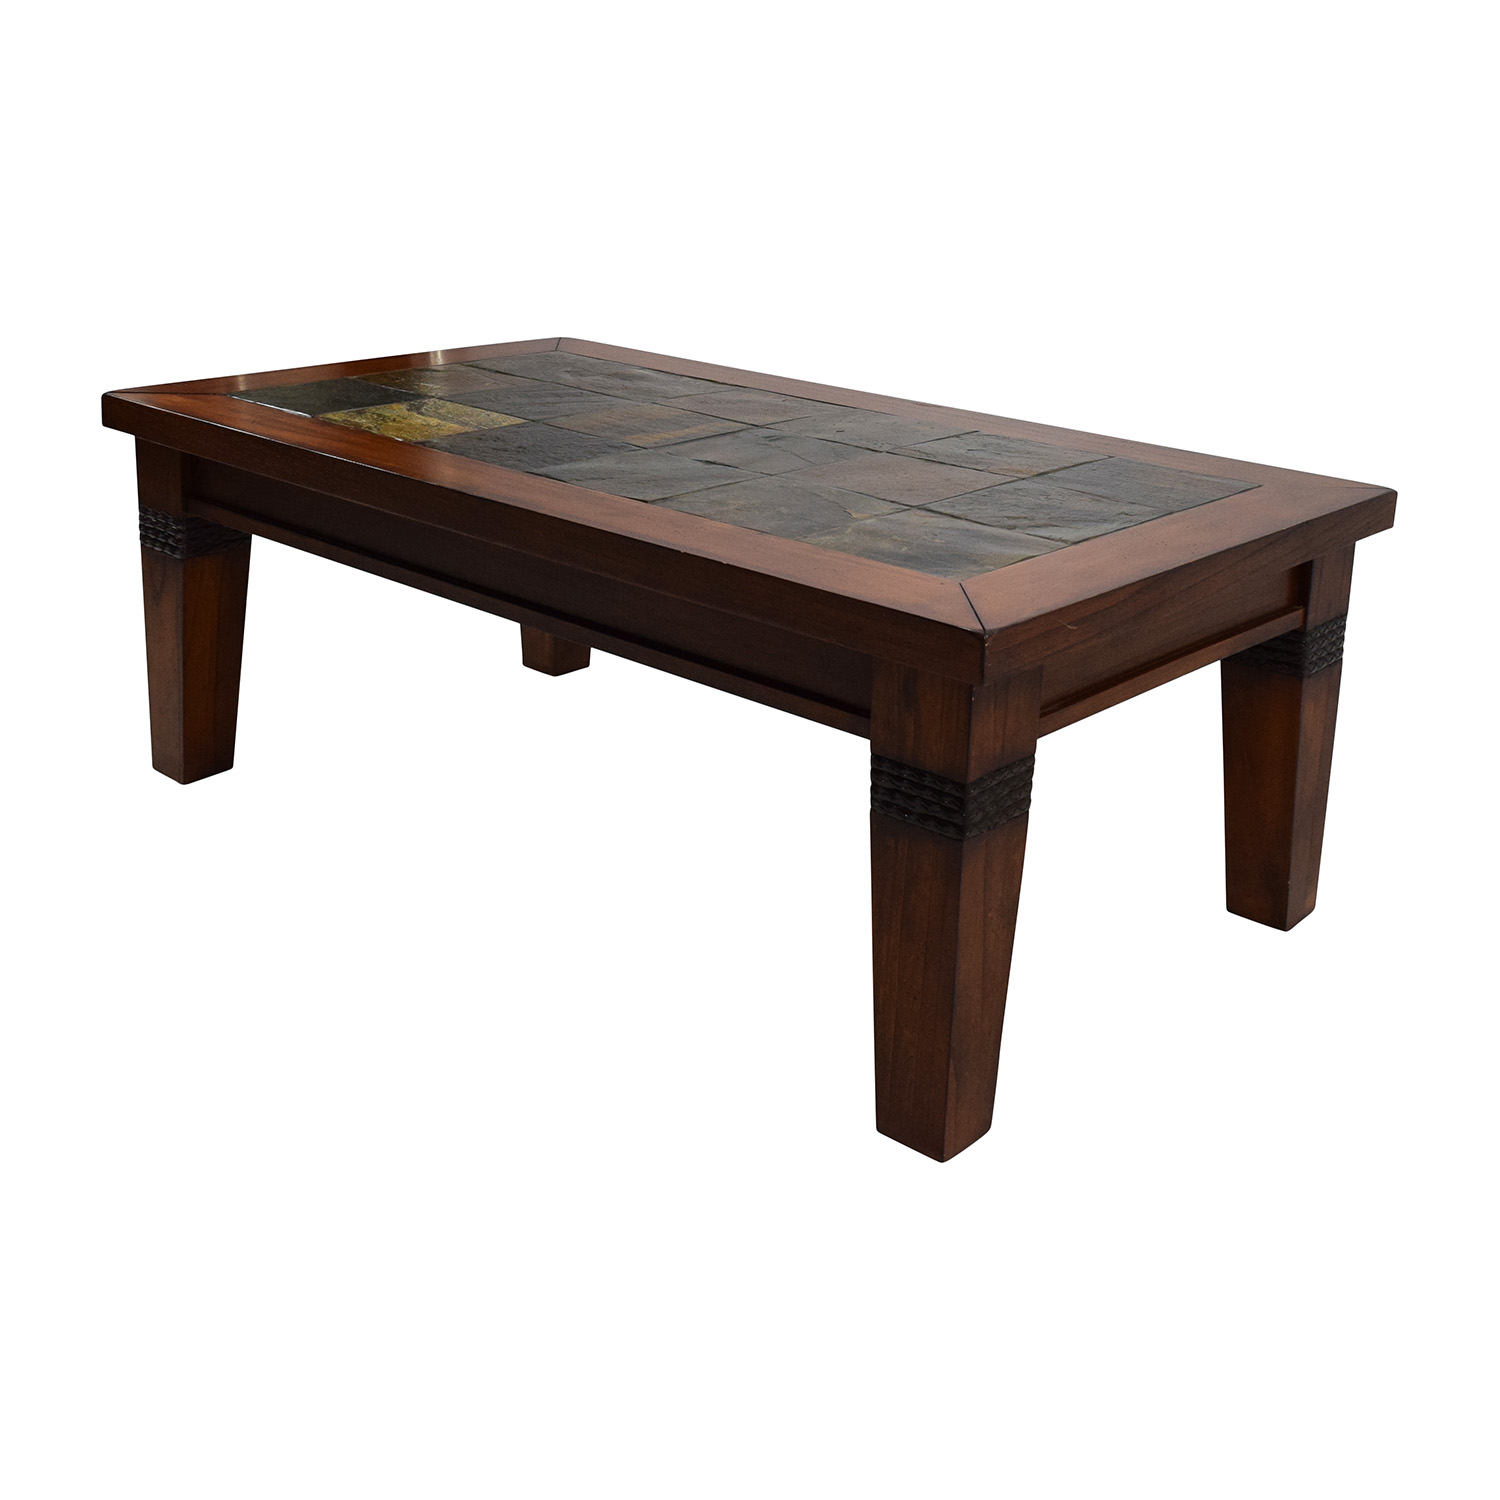 Coffee Tables Images 77 Off Wooden And Tiled Coffee Table Tables